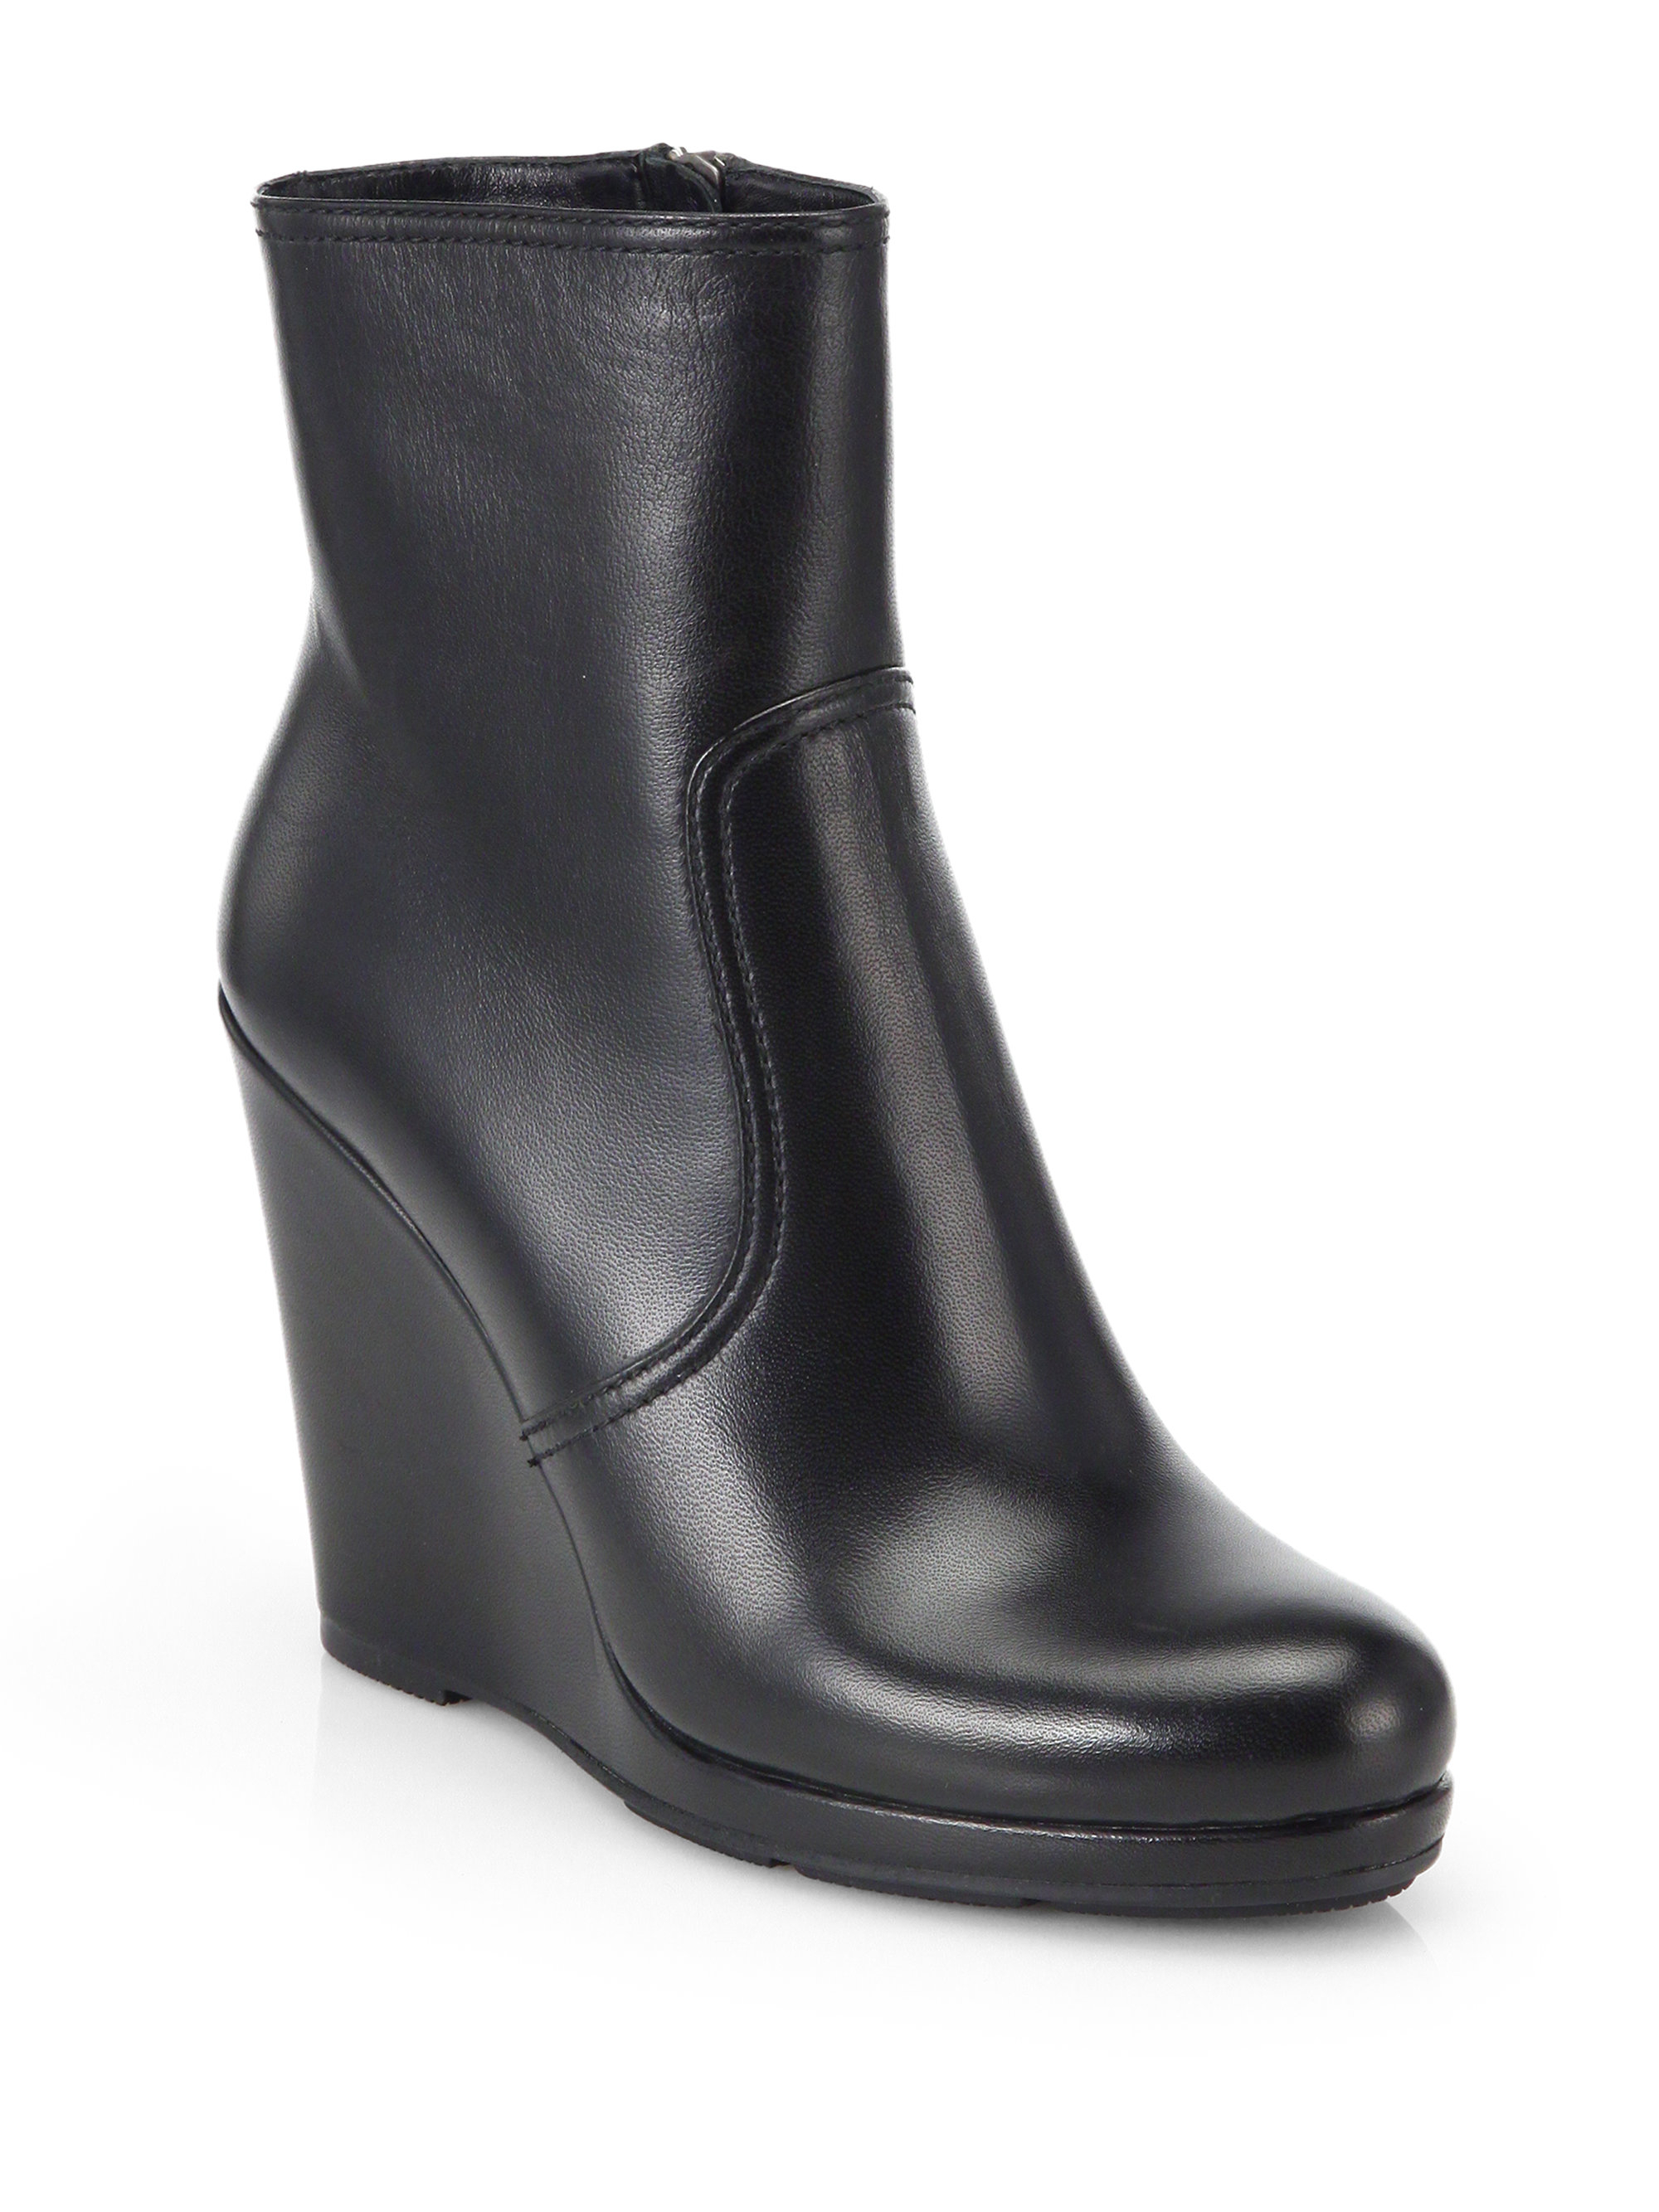 4980759b47f Lyst - Prada Leather Wedge Ankle Boots in Black